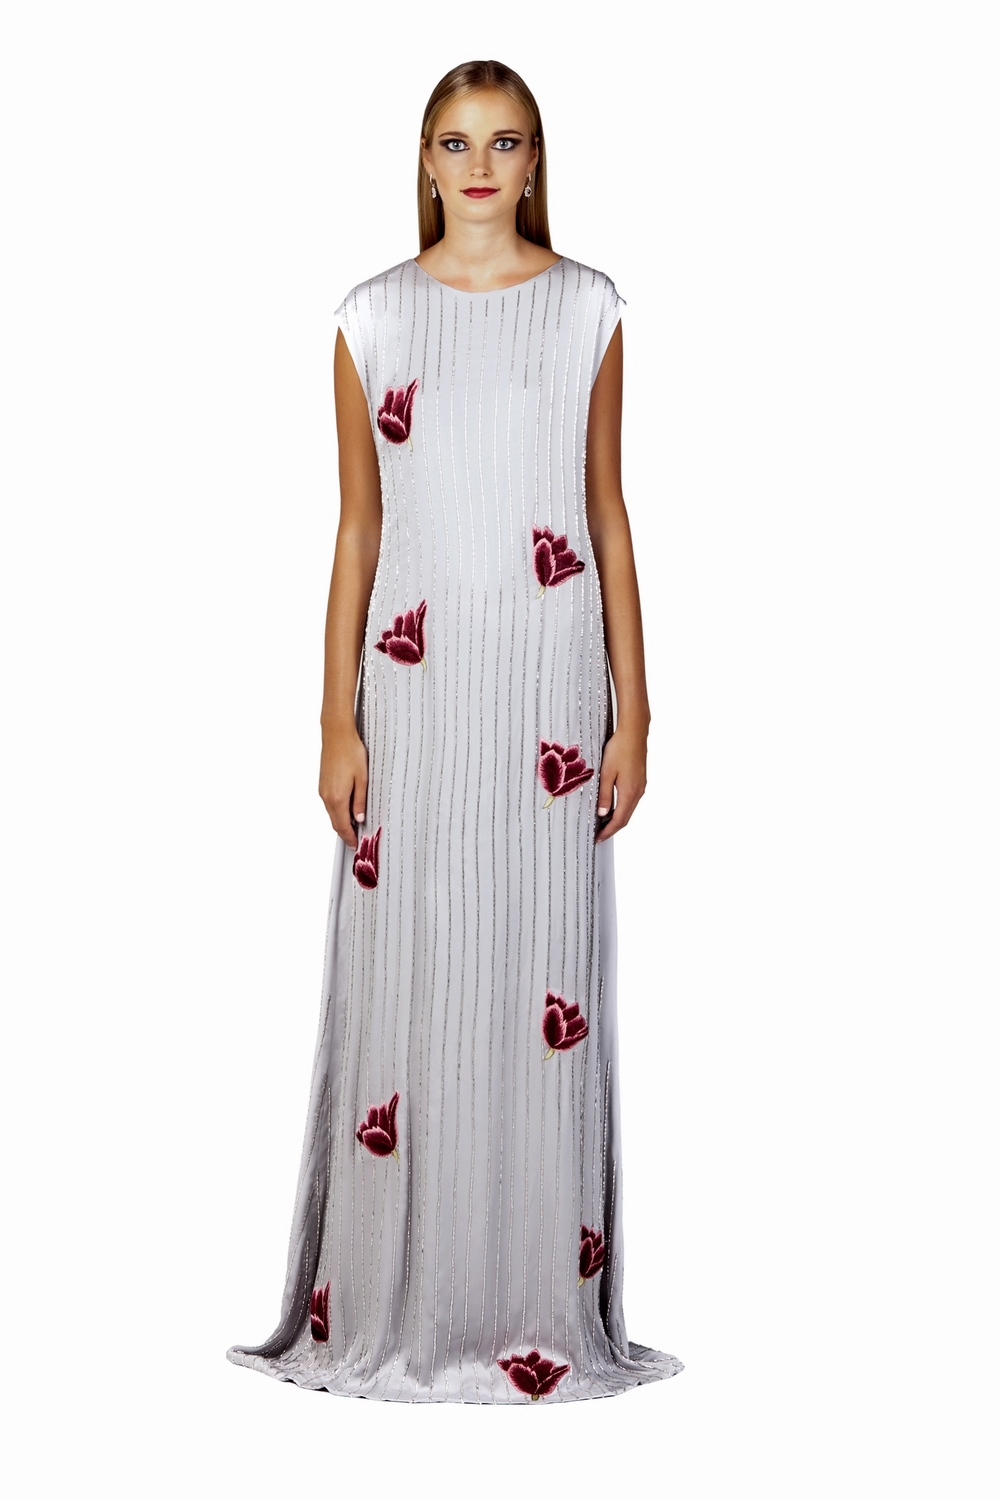 Tulips_Embroidered_Beaded_Gown_Front.jpg